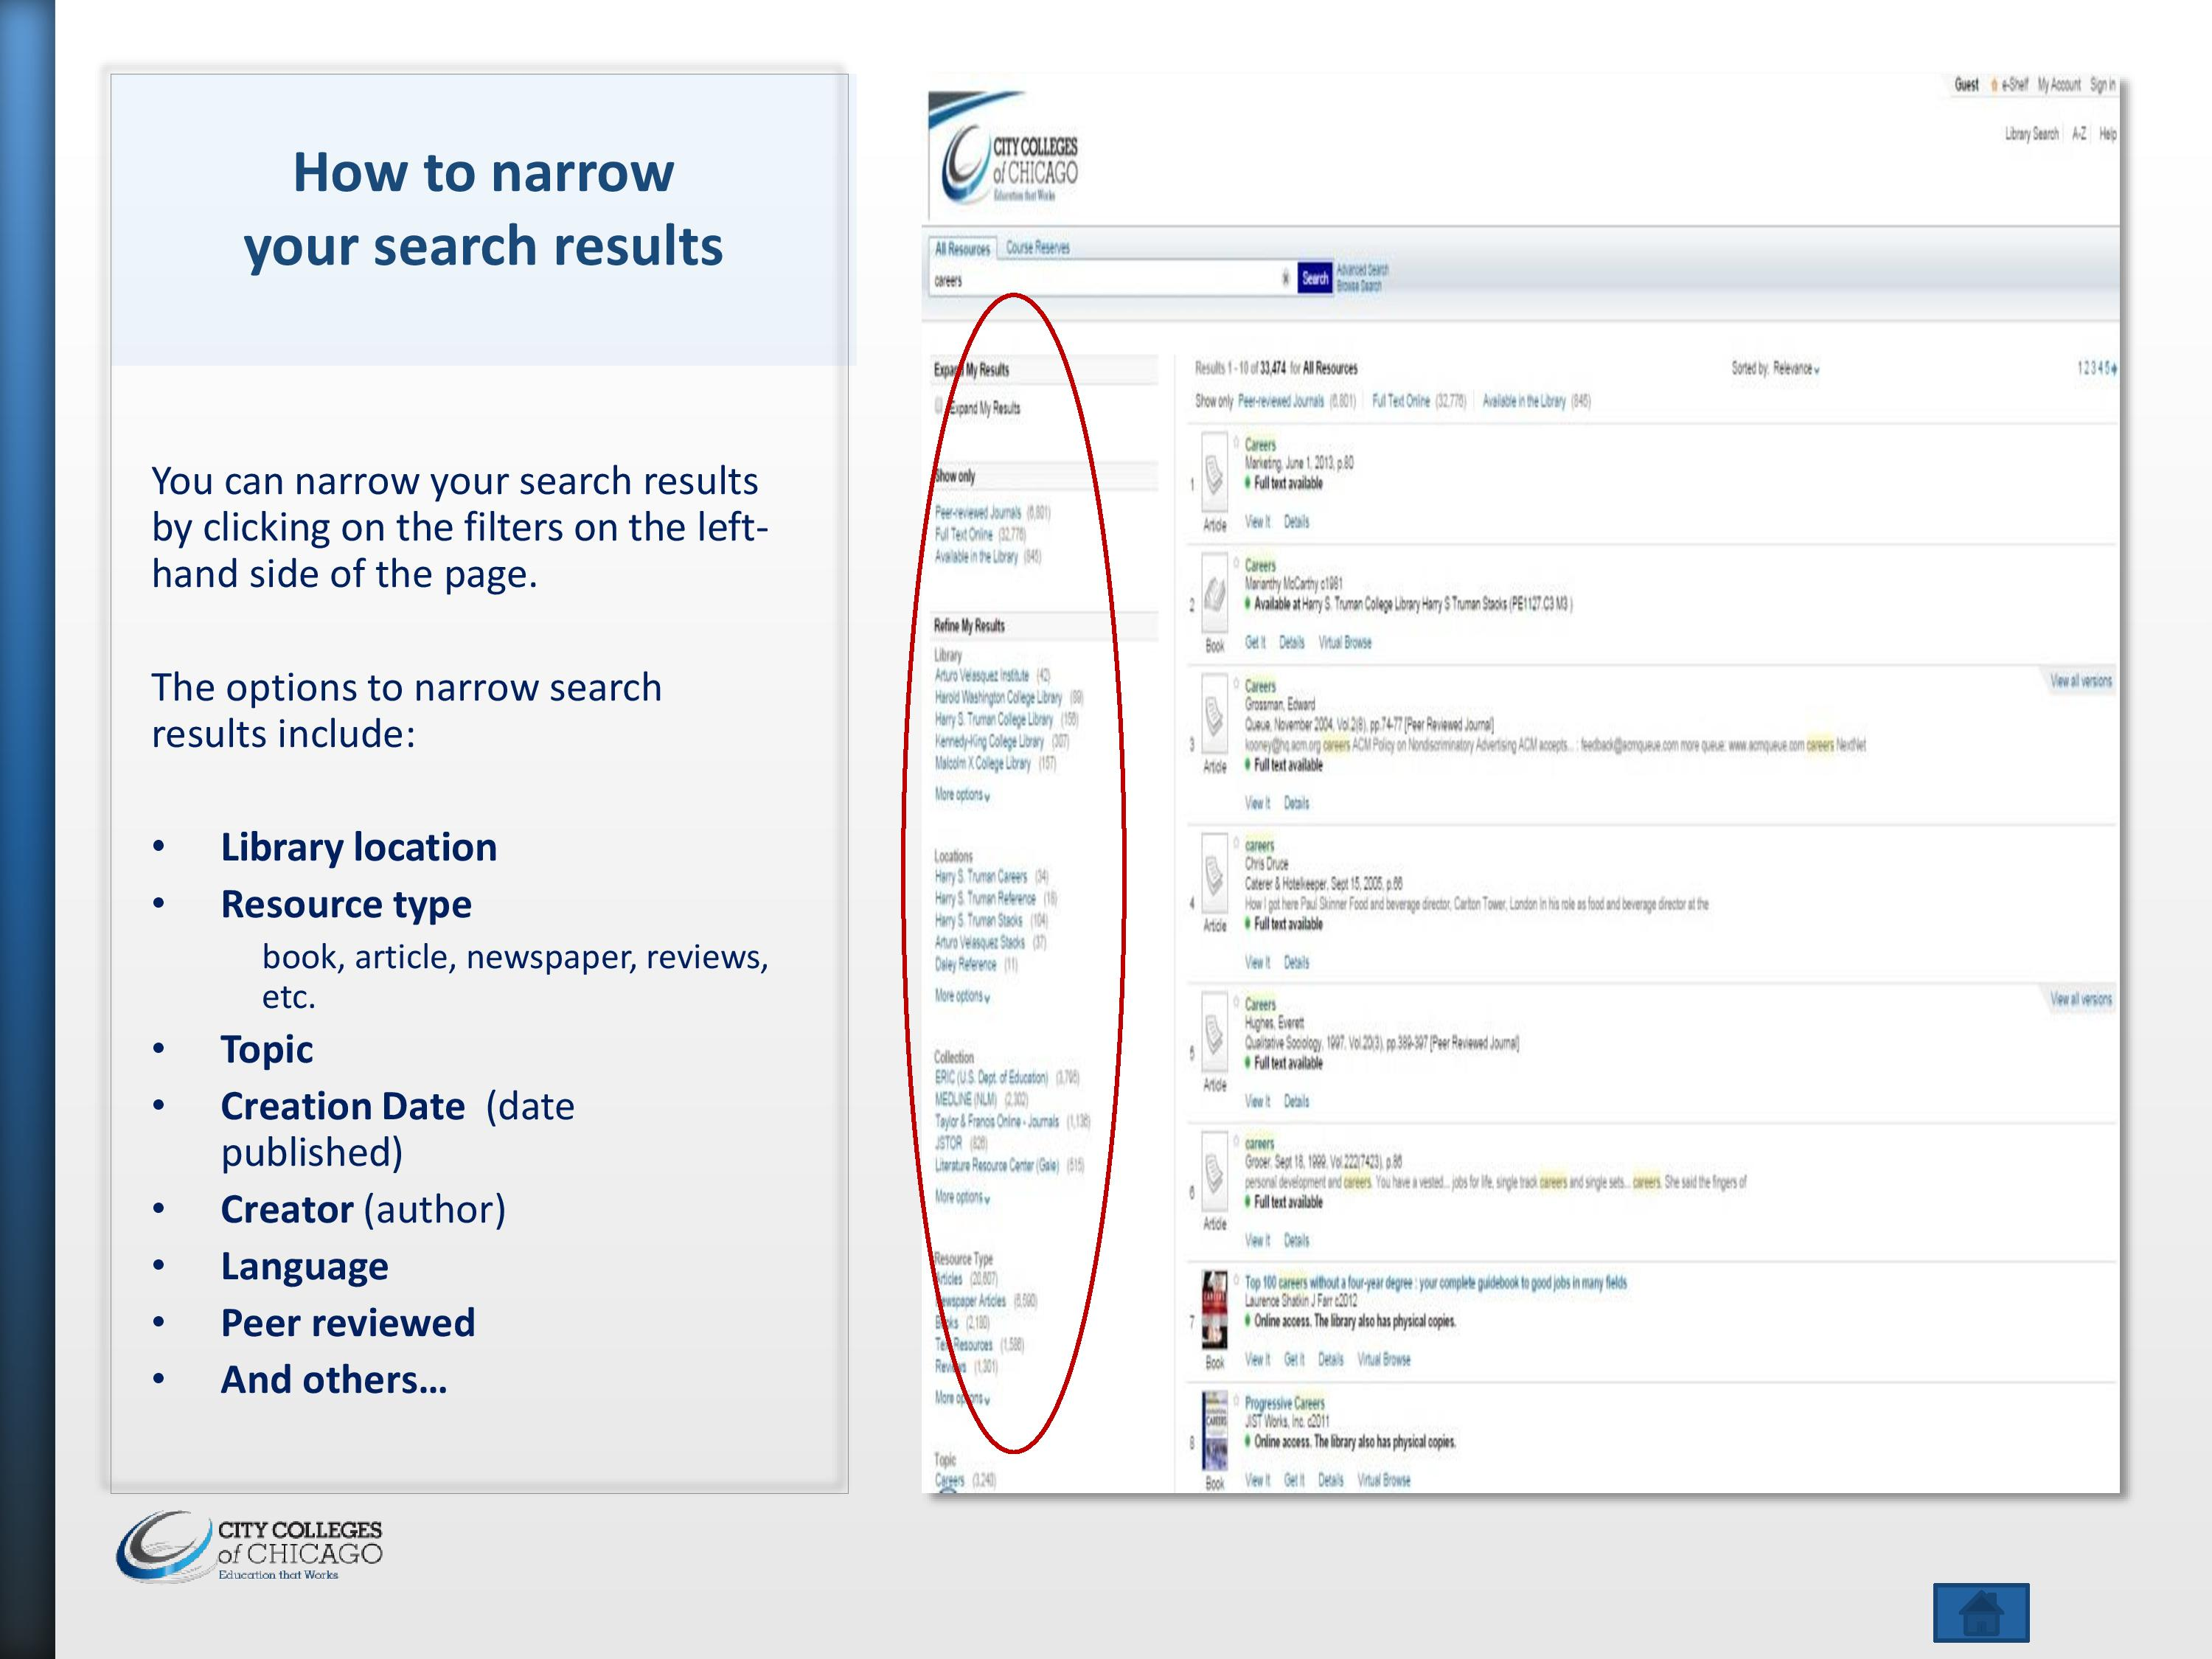 The image contains screenshots of the library catalog, showing how to narrow your search results.